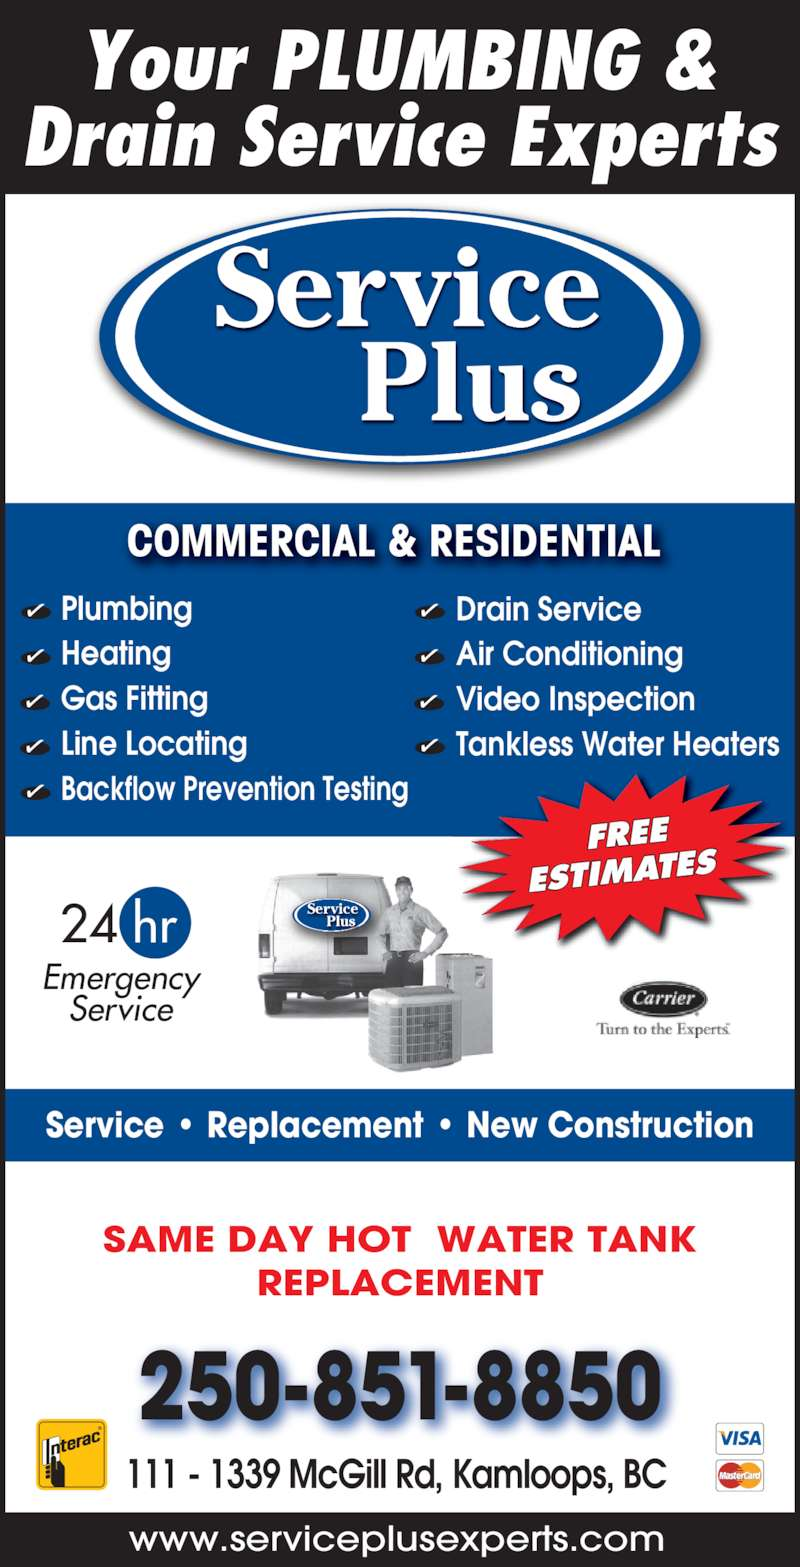 Service Plus (250-851-8850) - Display Ad - Service Plus Service COMMERCIAL & RESIDENTIAL  Plus www.serviceplusexperts.com  Emergency Service 24 hr Service • Replacement • New Construction 250-851-8850 111 - 1339 McGill Rd, Kamloops, BC  FREE ESTIMATES Your PLUMBING & Drain Service Experts Plumbing Heating Gas Fitting Line Locating Backflow Prevention Testing Drain Service Air Conditioning Video Inspection Tankless Water Heaters SAME DAY HOT  WATER TANK REPLACEMENT